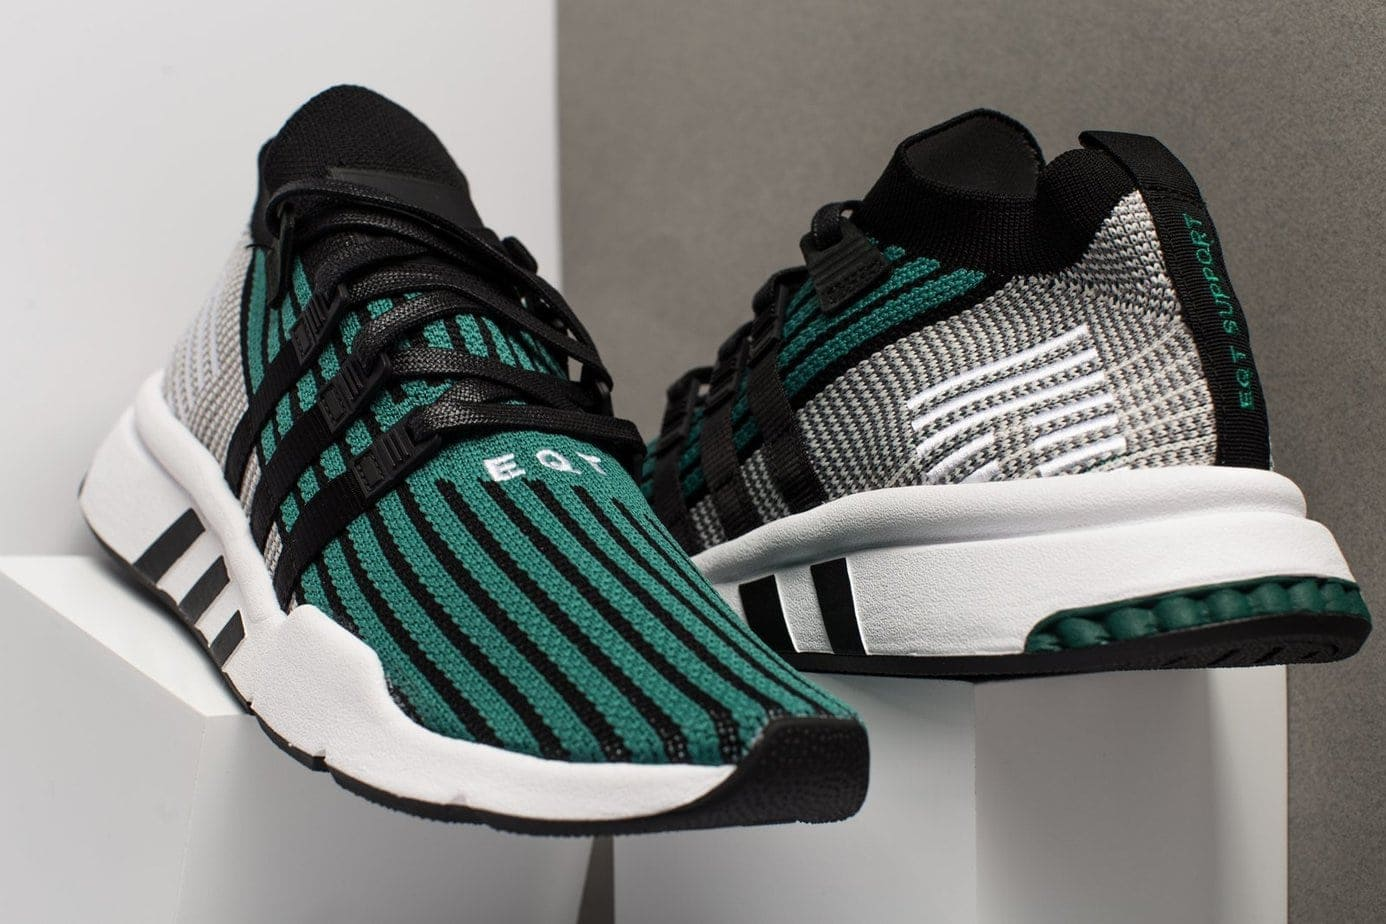 hot sale online 144b8 3cded adidas EQT Support Mid Primeknit Release Date February 2018. Price 150.  Style Code CQ2998